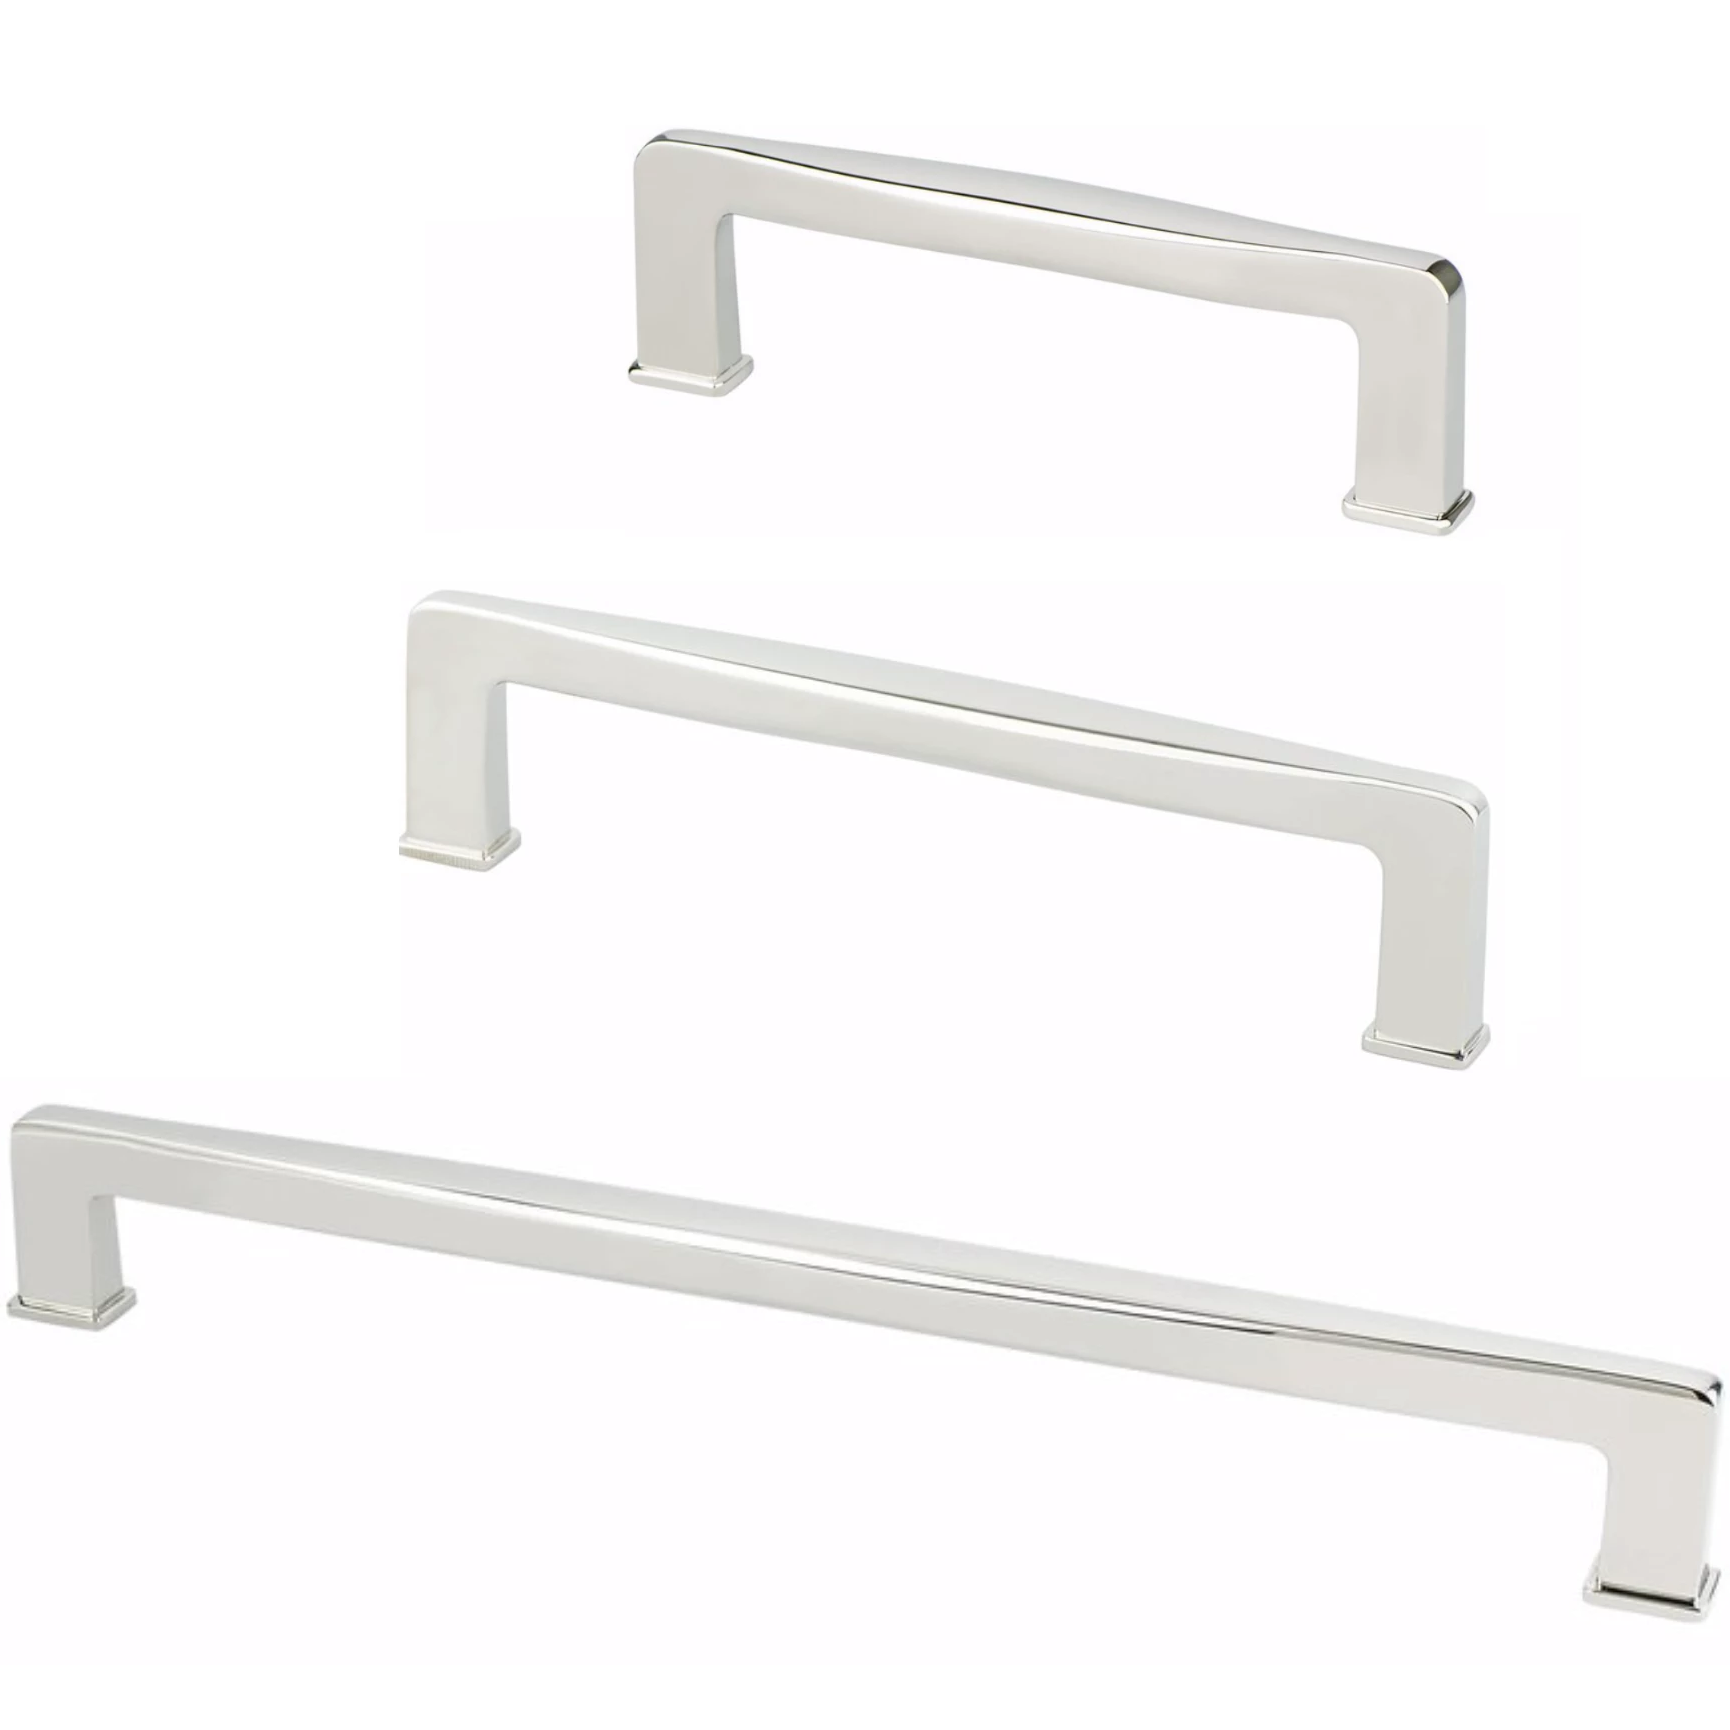 Kelly No 1 Polished Nickel Cabinet Drawer Pulls Kitchen Drawer Handl Forge Hardware Studio